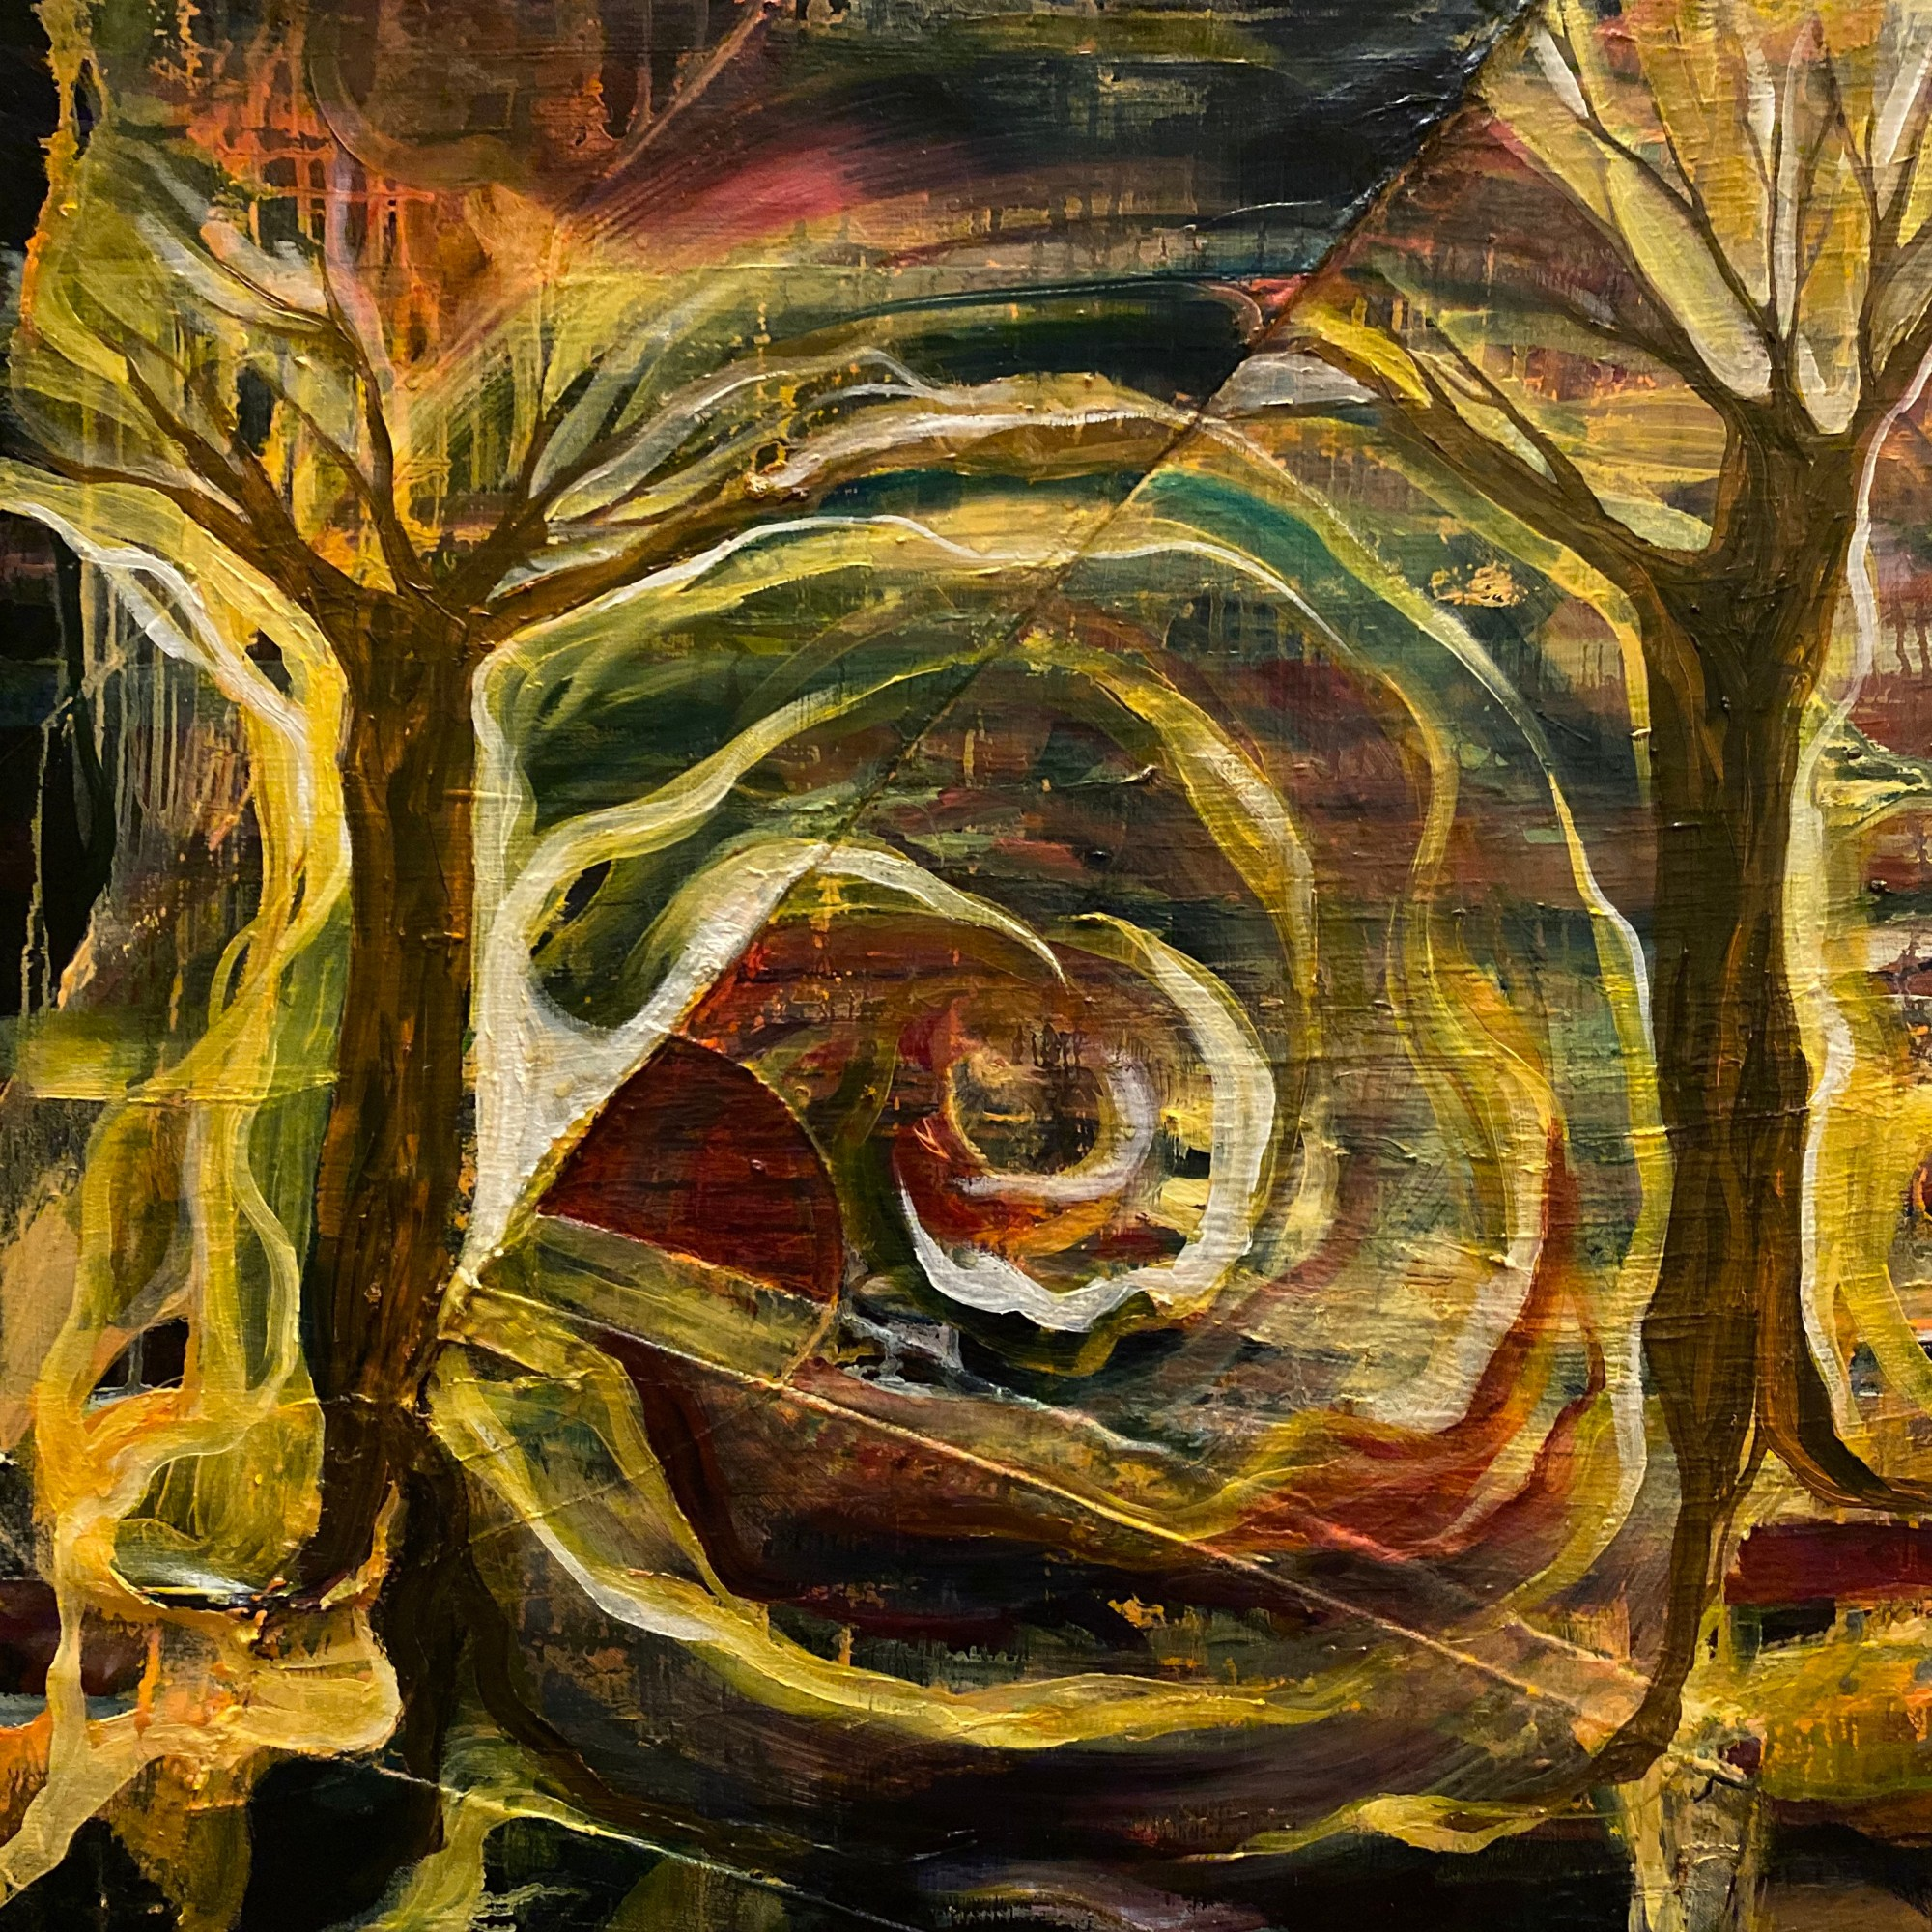 Autumn Sunset - Abstracted landscape painting